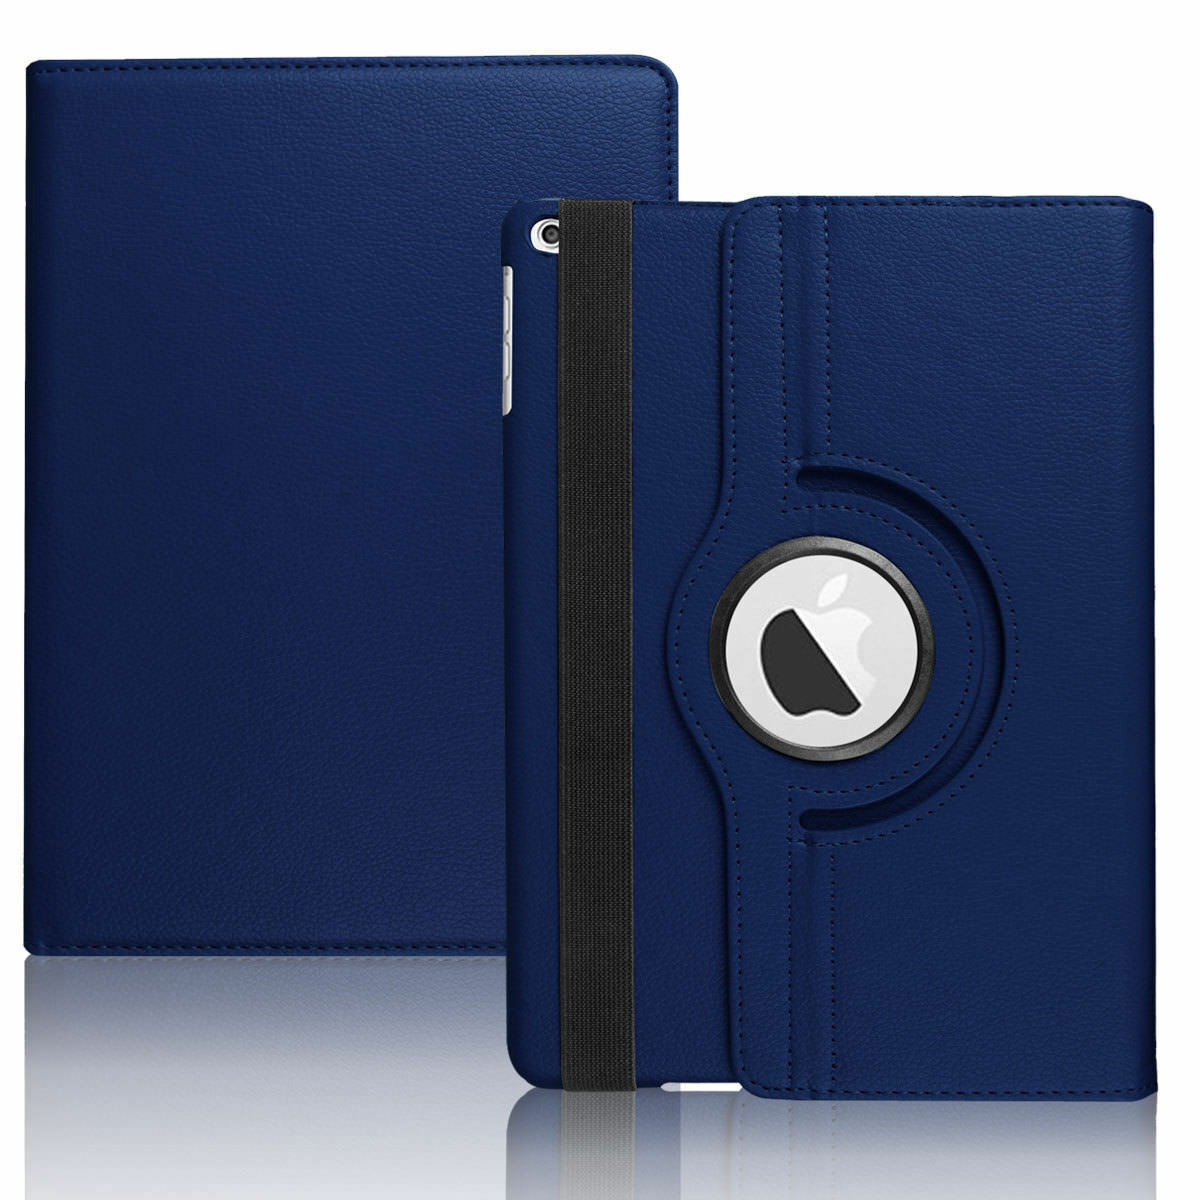 360° Rotating Shockproof Leather Flip Smart Stand Case Cover Fr iPad 9.7 6th Gen 3